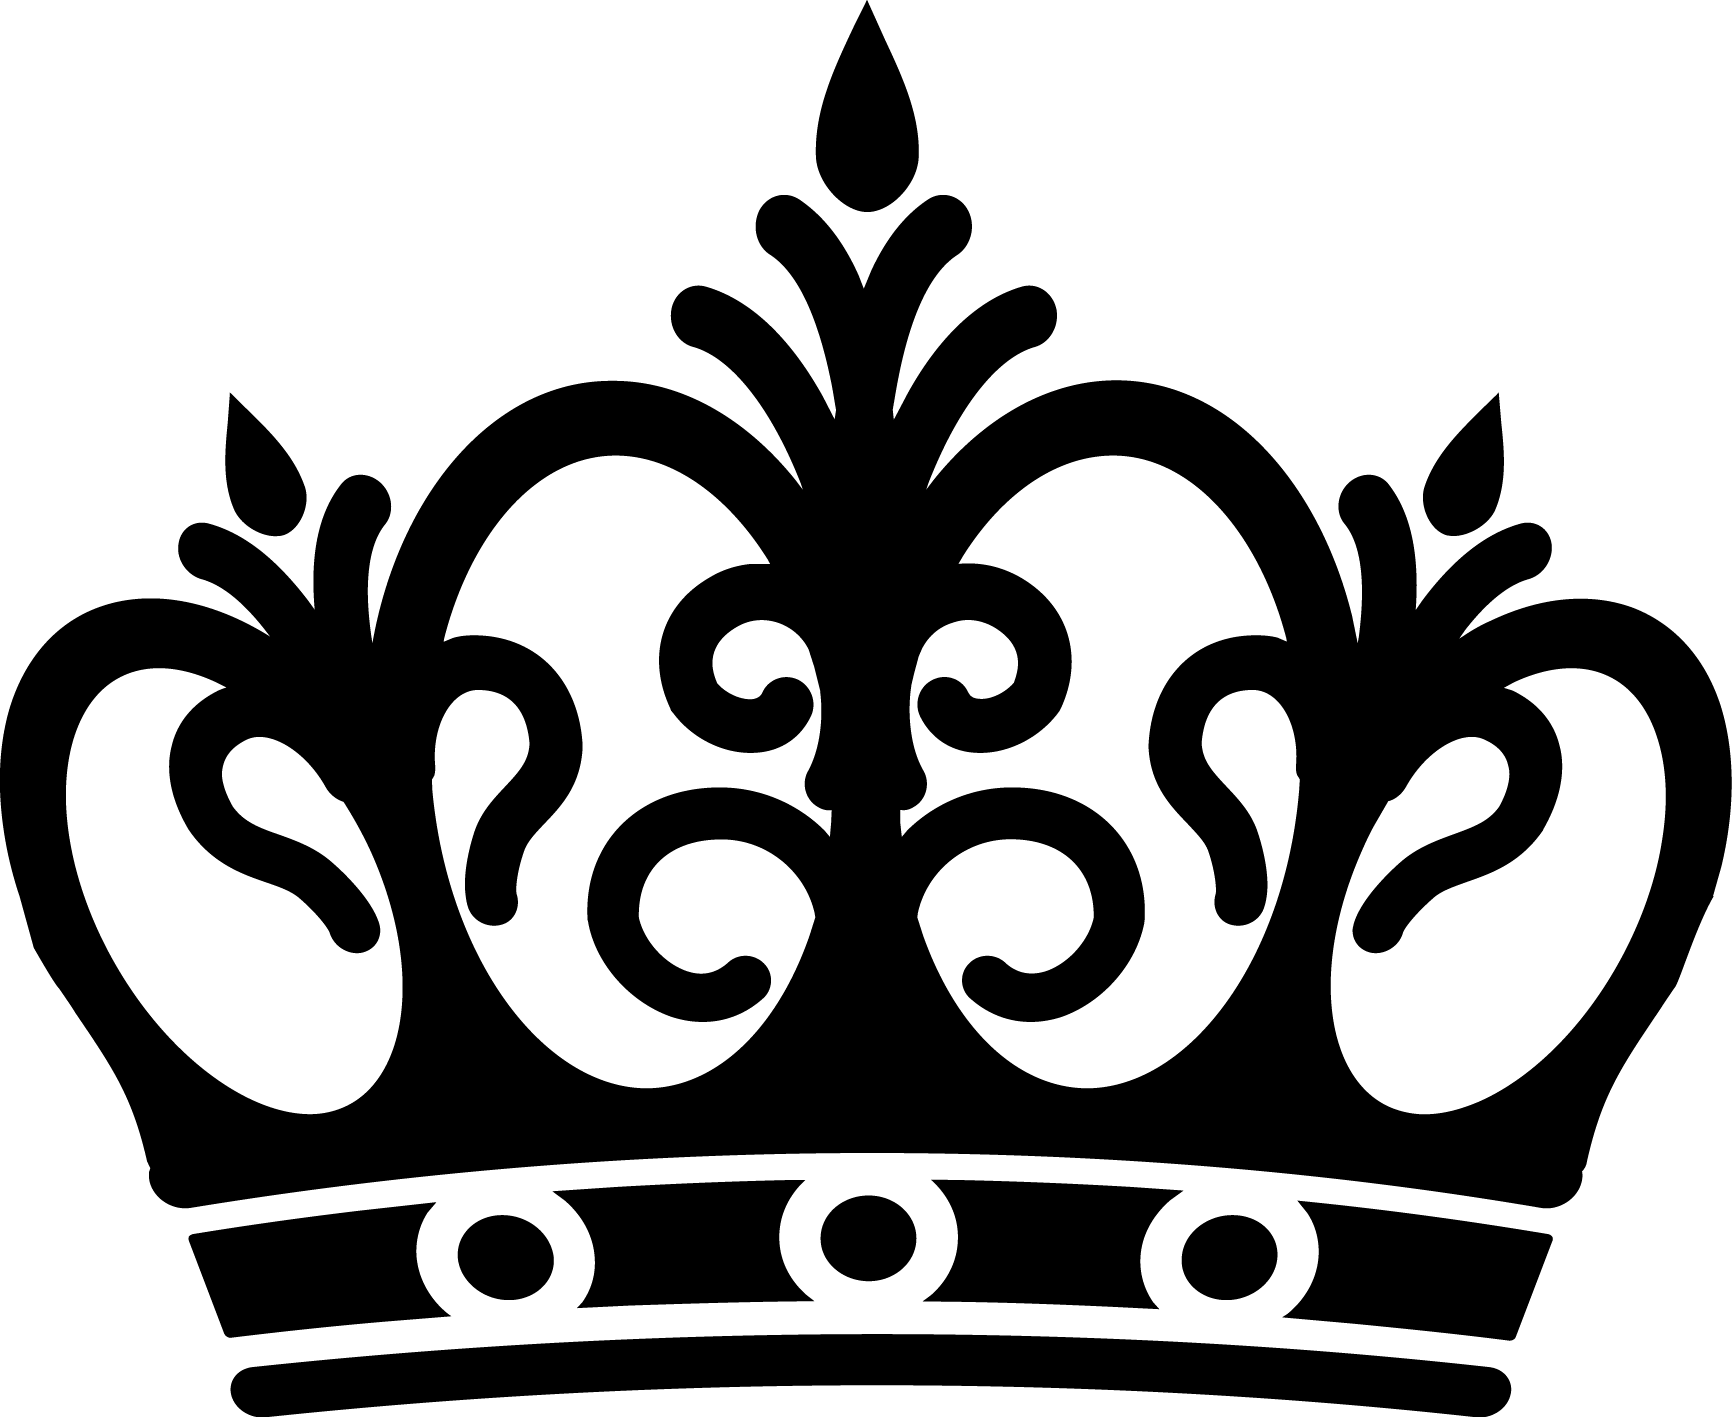 English crown clipart jpg freeuse library Crown Drawing Images at GetDrawings.com | Free for personal use ... jpg freeuse library